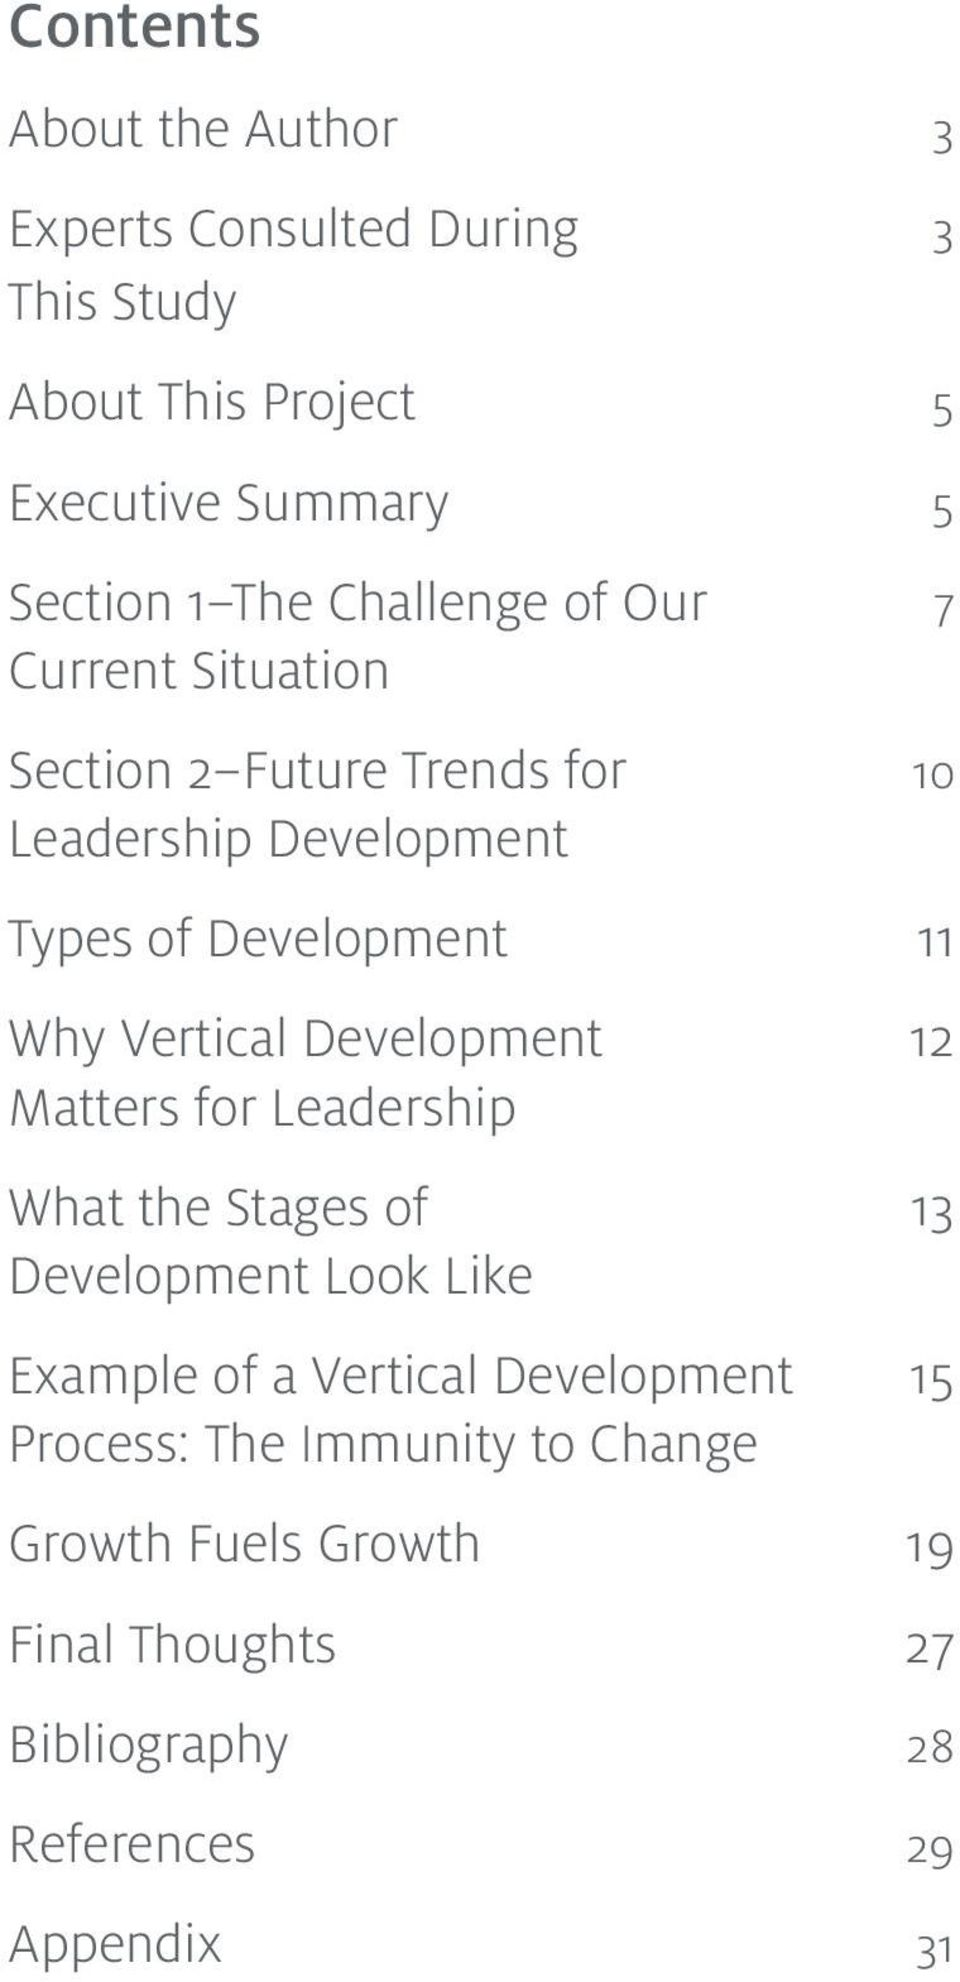 Vertical Development 12 Matters for Leadership What the Stages of 13 Development Look Like Example of a Vertical